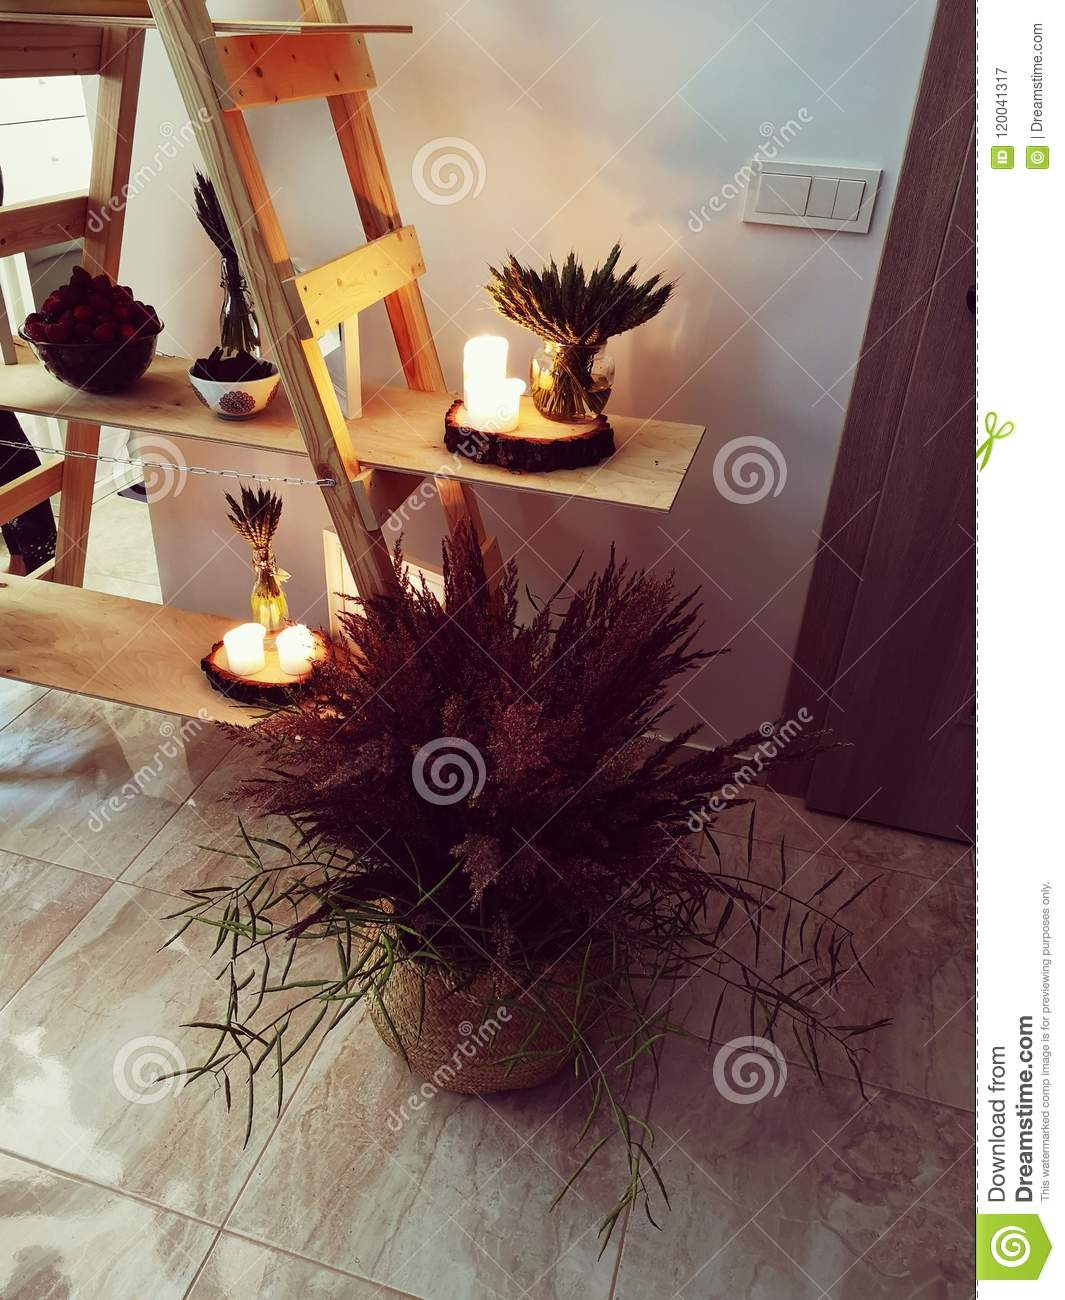 Home Decoration With Nature Elements Stock Image - Image of ...